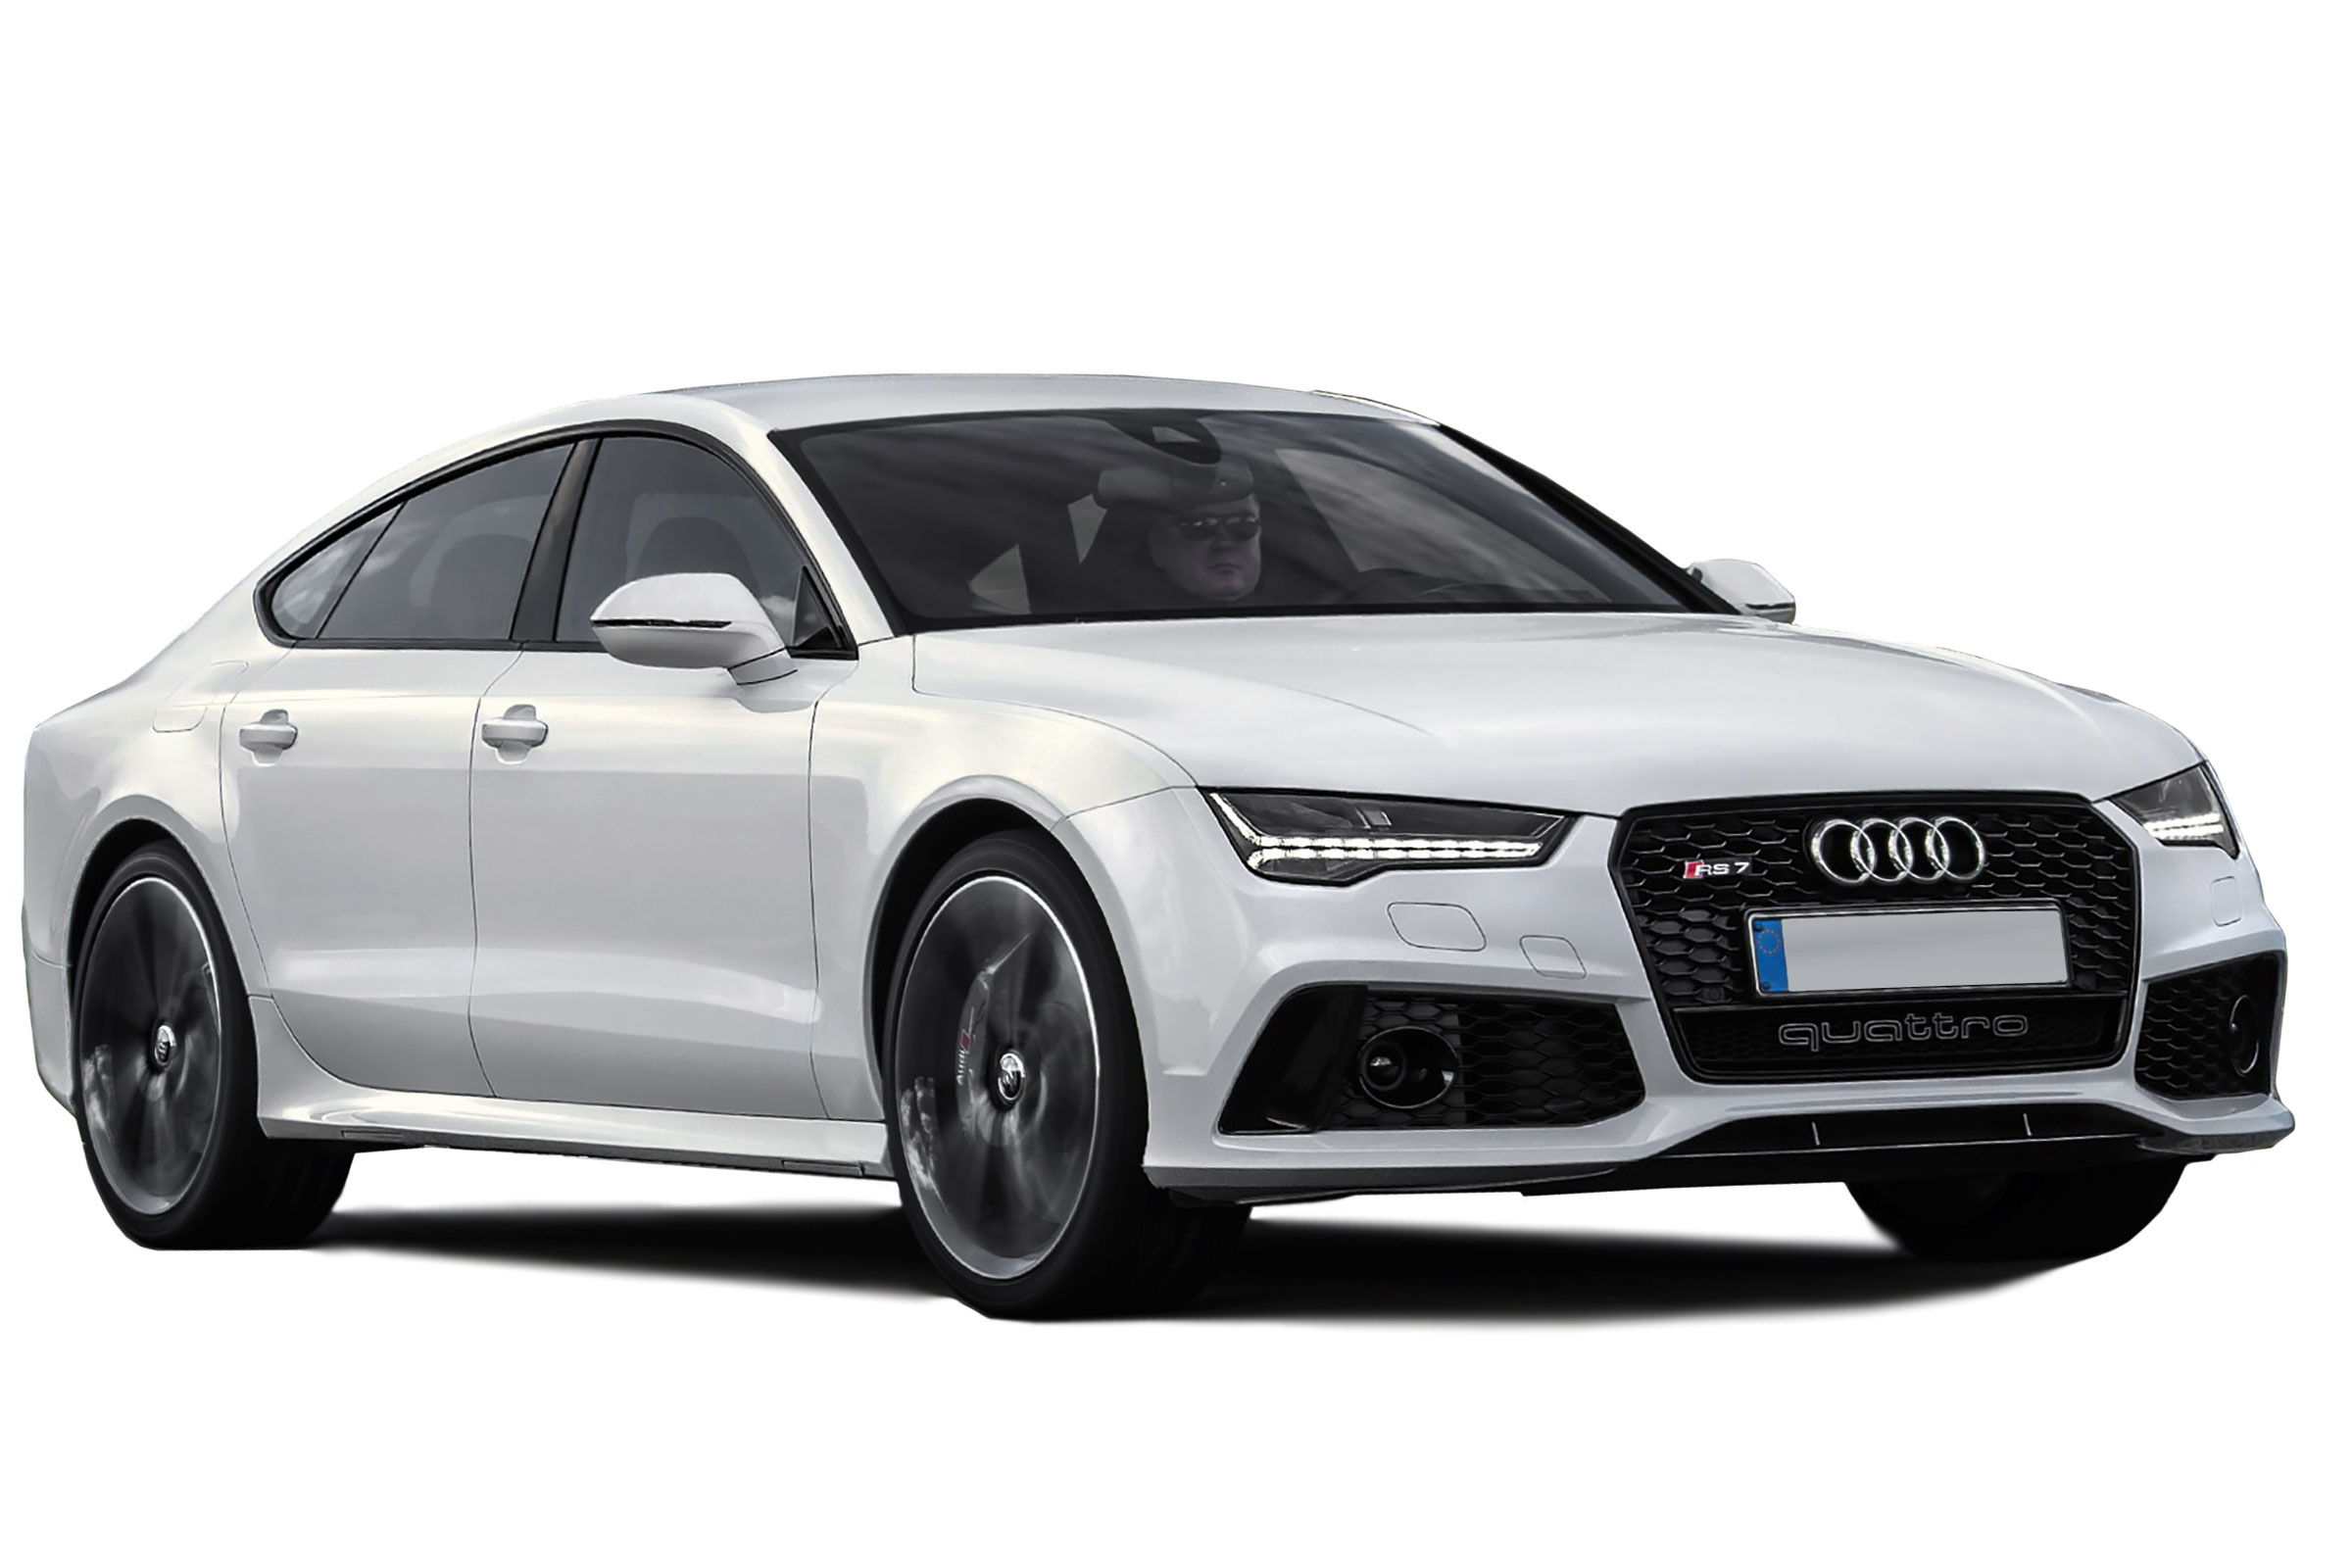 Audi rs3 sportback price in india 11